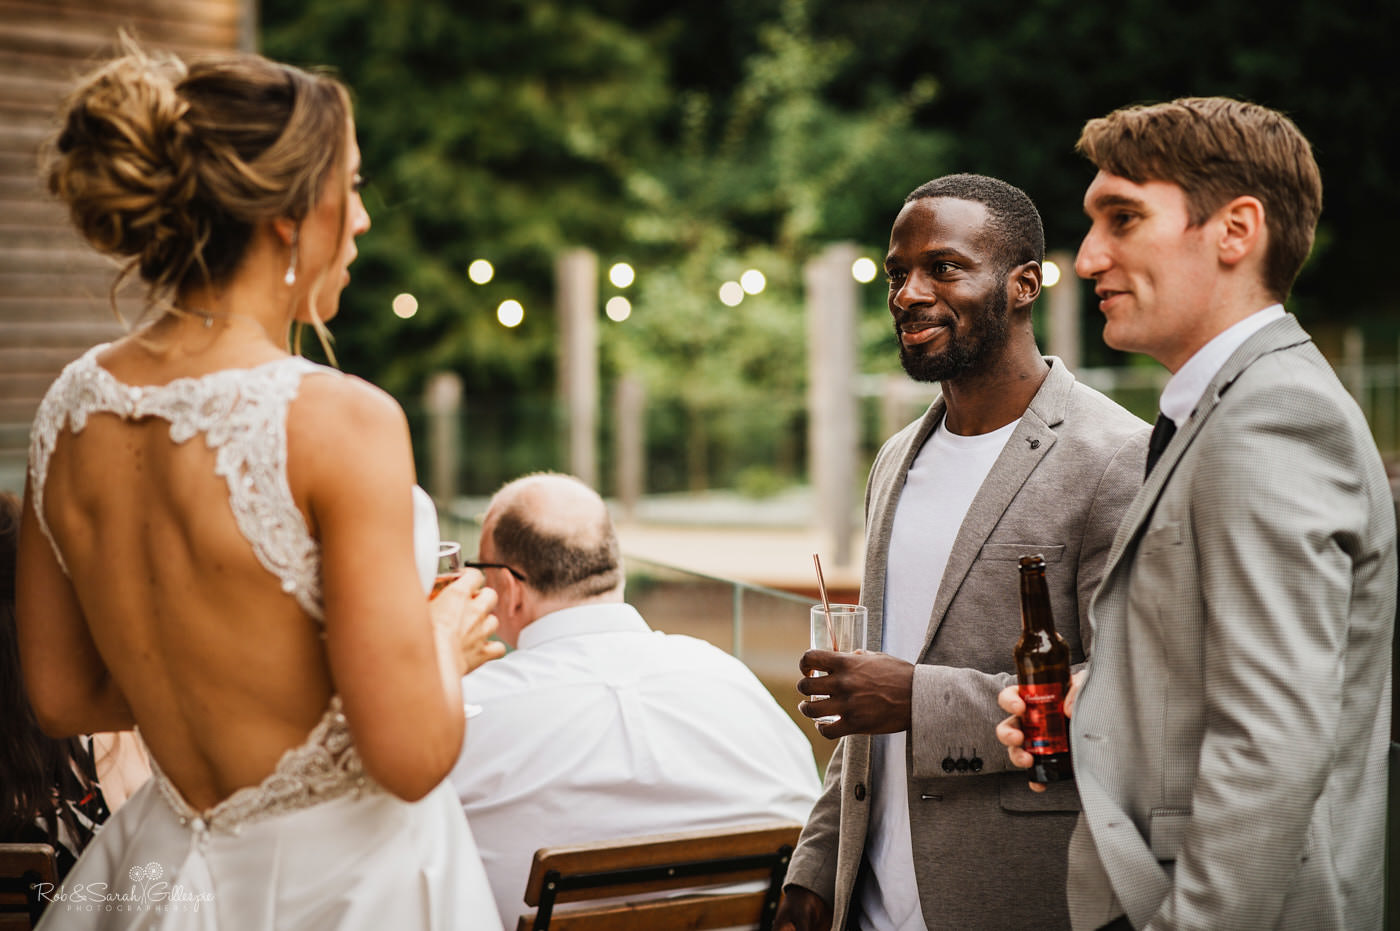 Wedding guests chat at evening reception